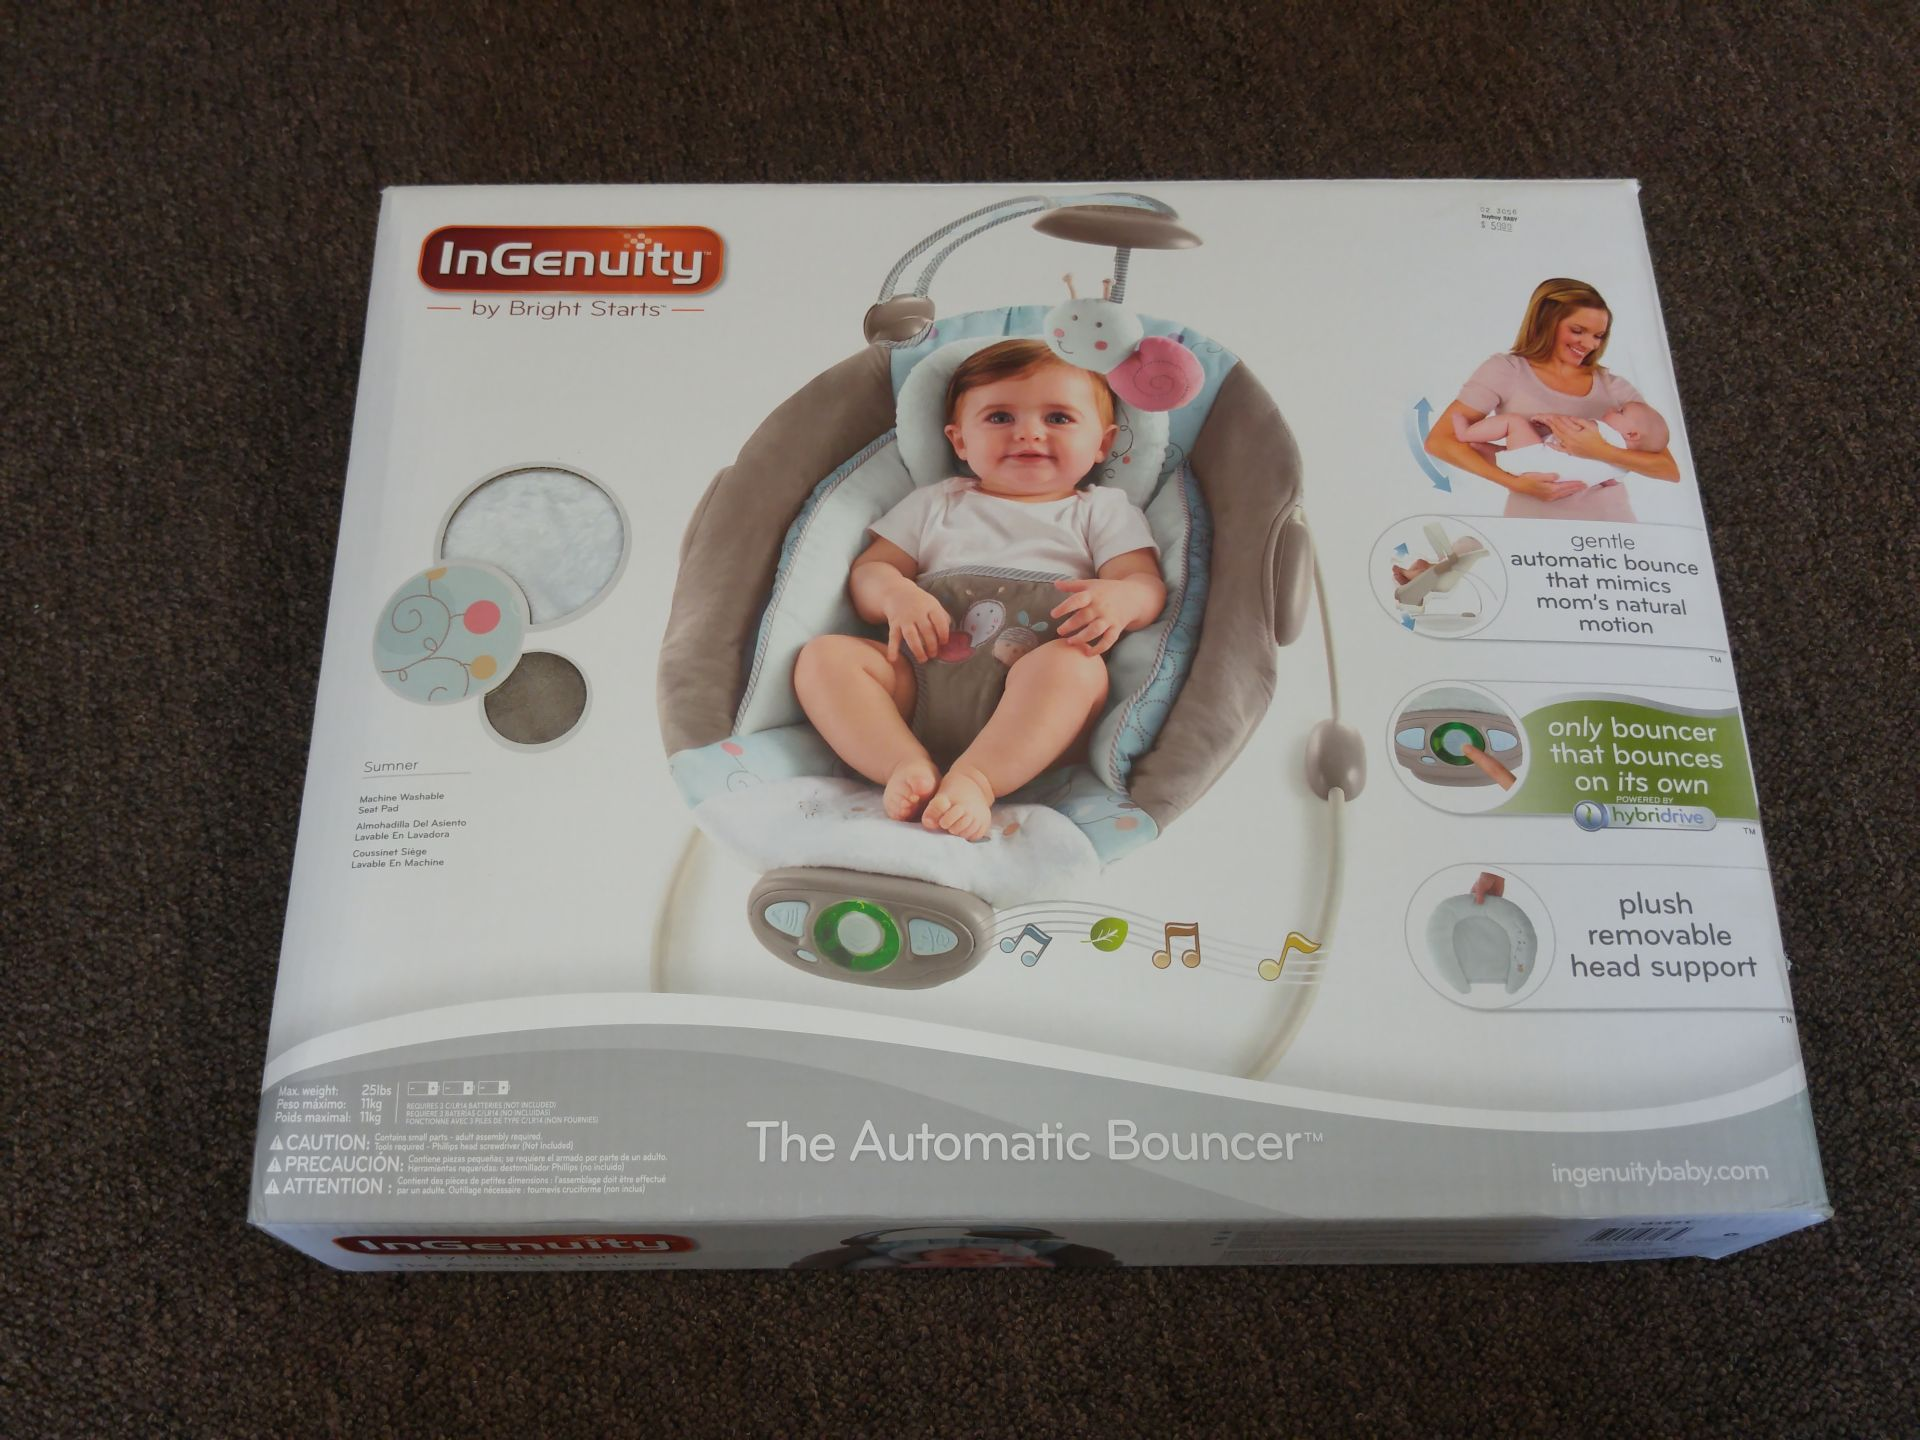 bright starts ingenuity automatic bouncer manual